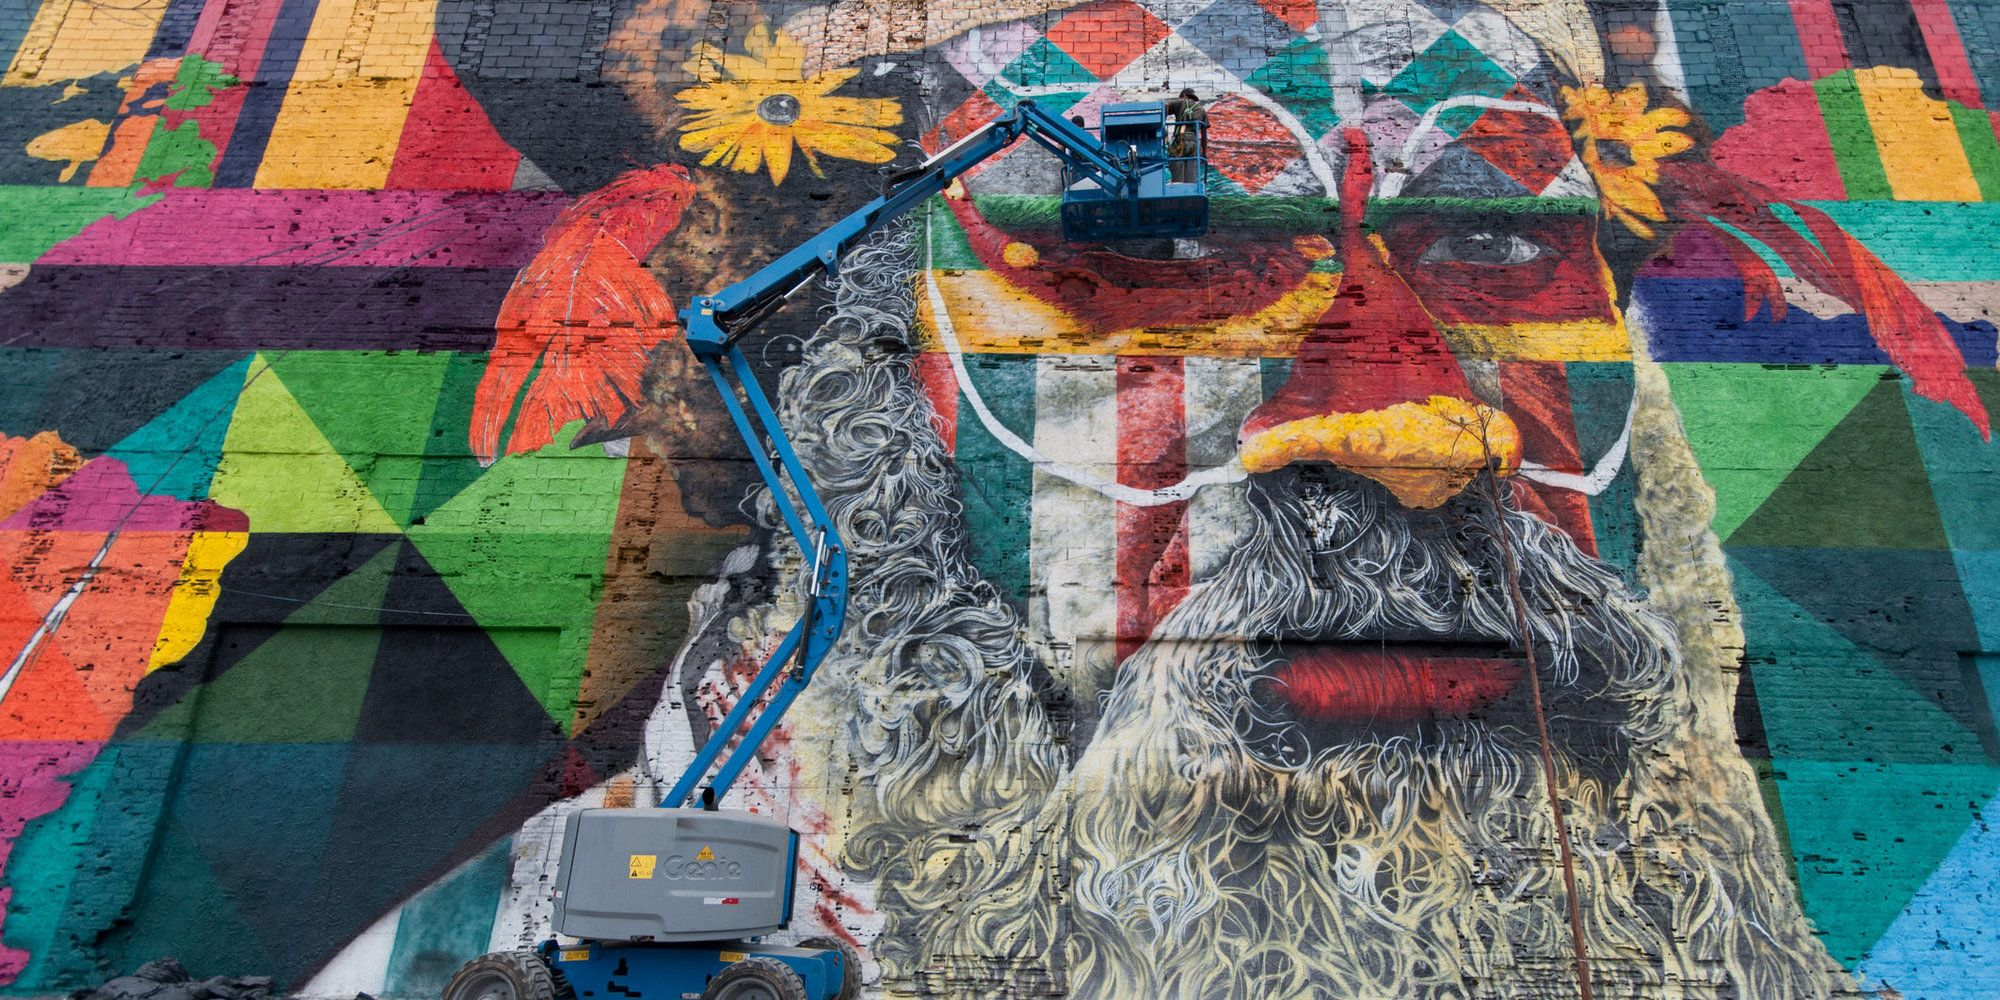 Street Artist's Epic Ode To The Olympics Might Break World Record For Largest Mural